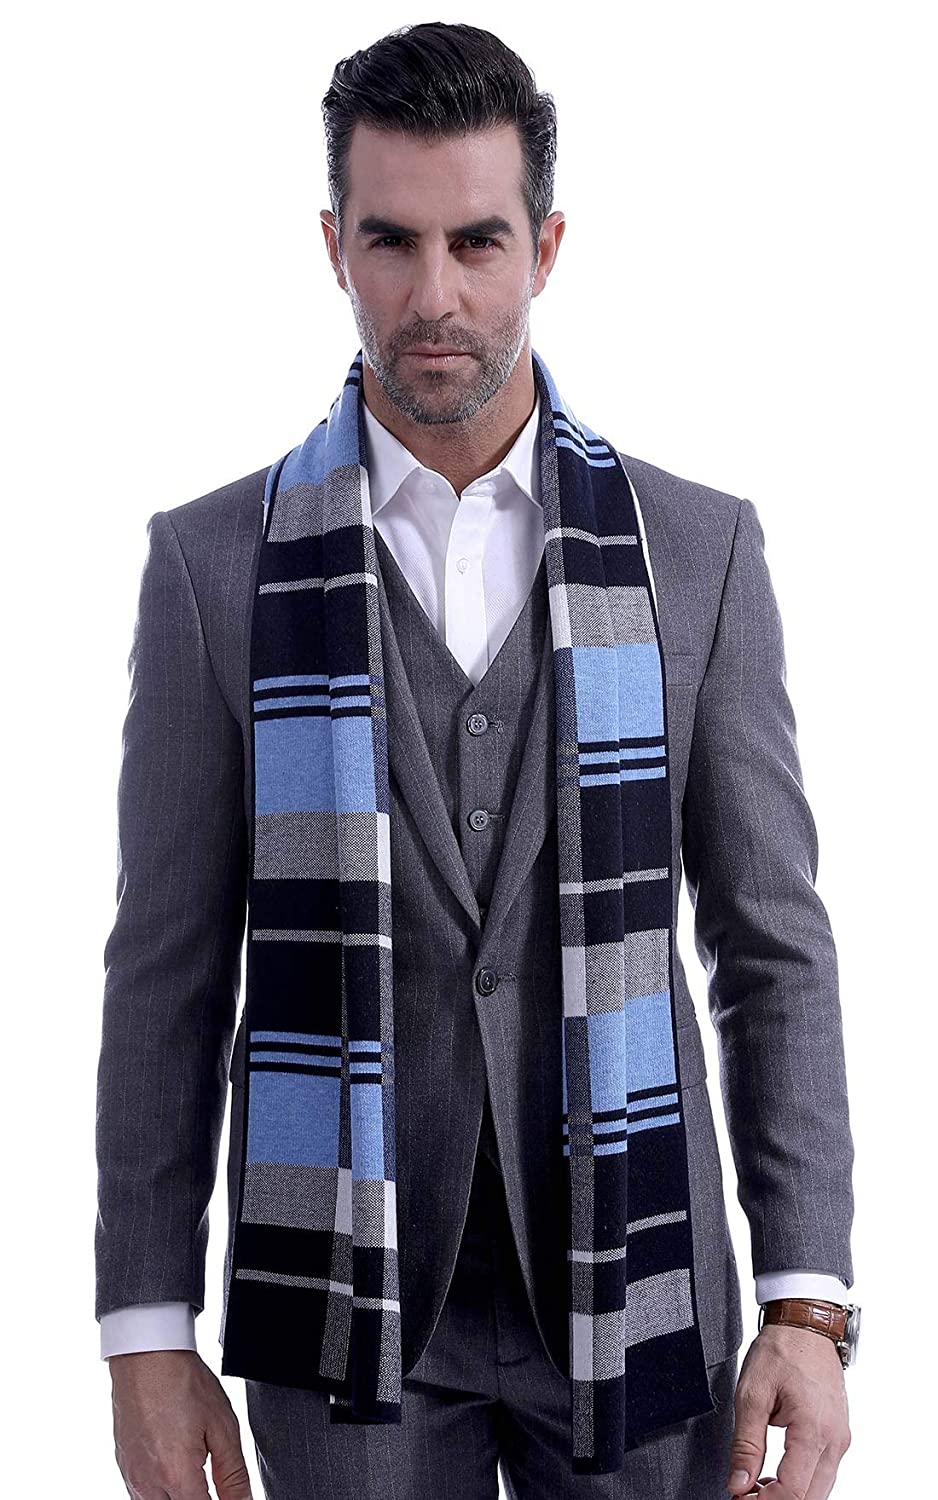 Mens Elegant Warm Wool Shawl Wrap Luxurious Classic Plaid Scarves Lightweight - Blue Panegy